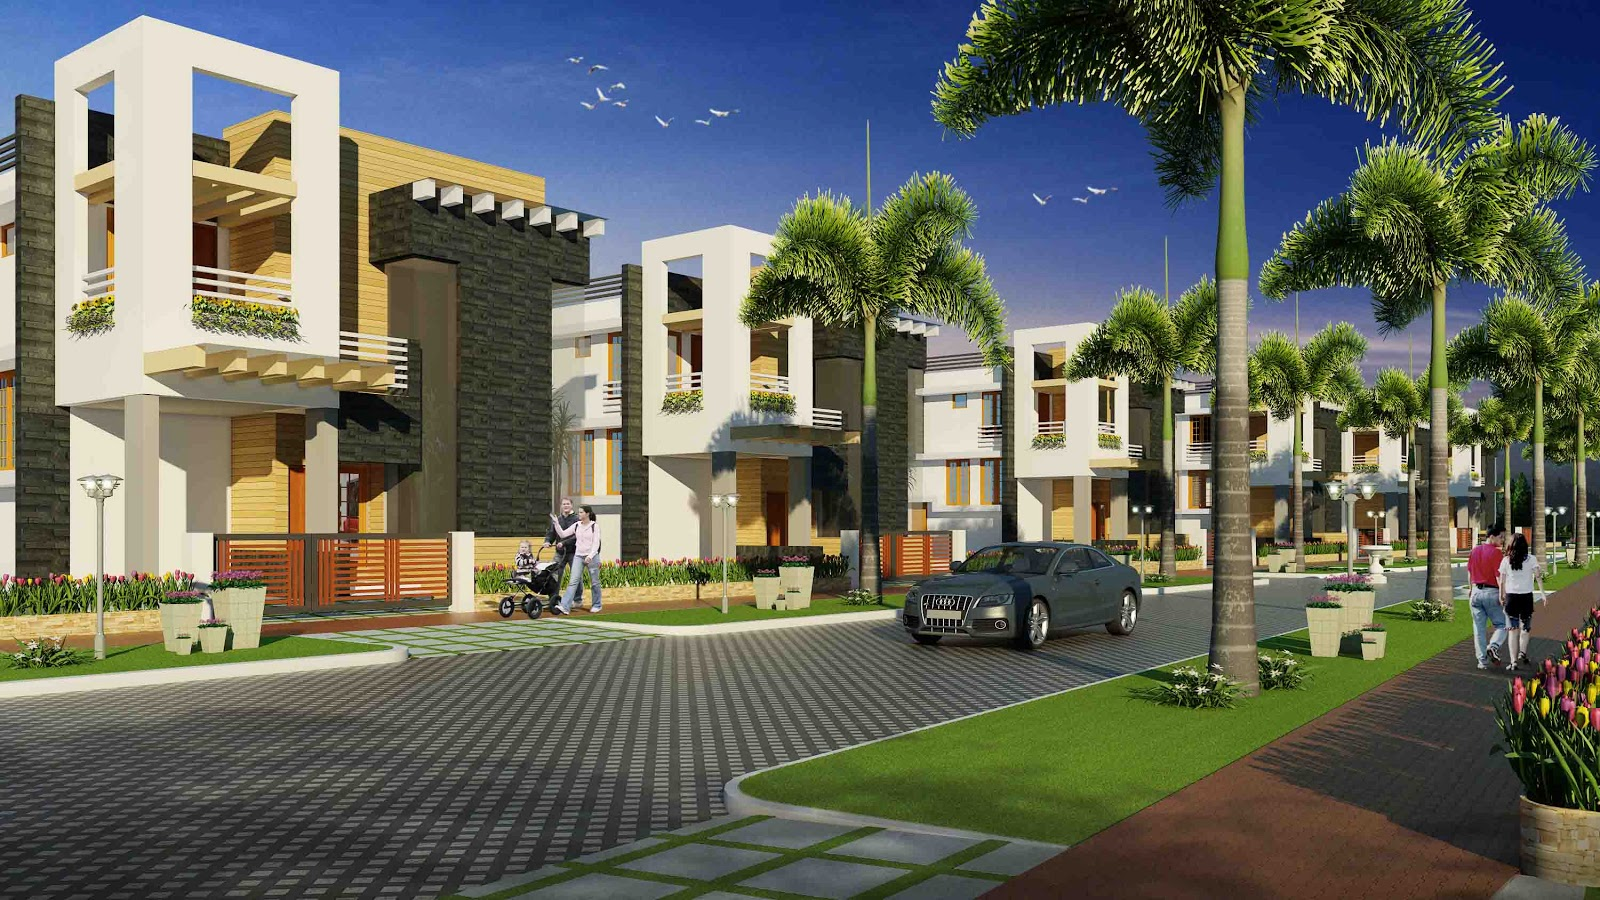 Shwas homes pvt ltd the most respected home builder in for Gardens and villa